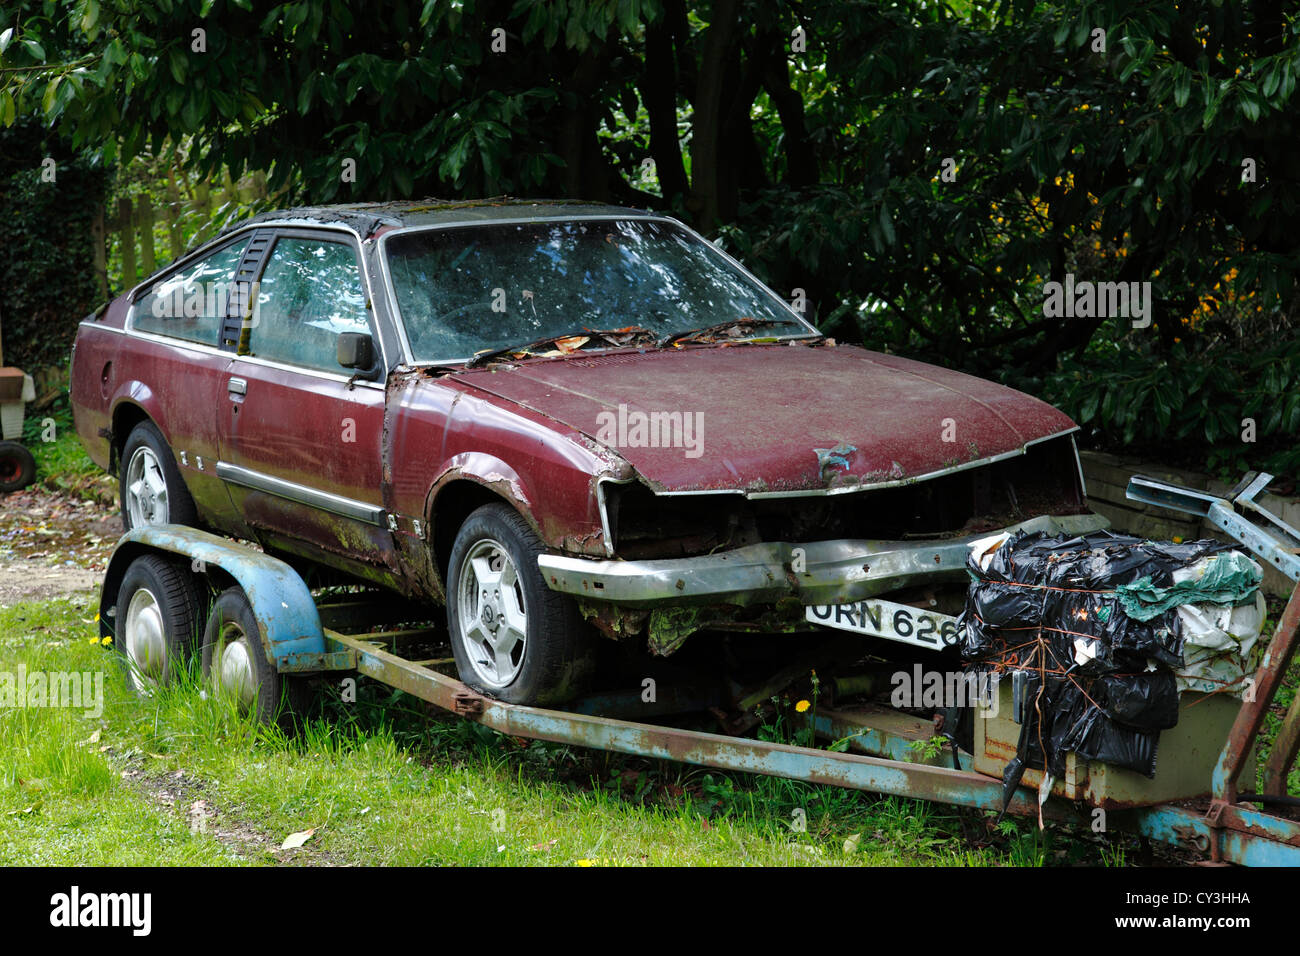 An old car on a trailer in the U.K Stock Photo, Royalty Free Image ...